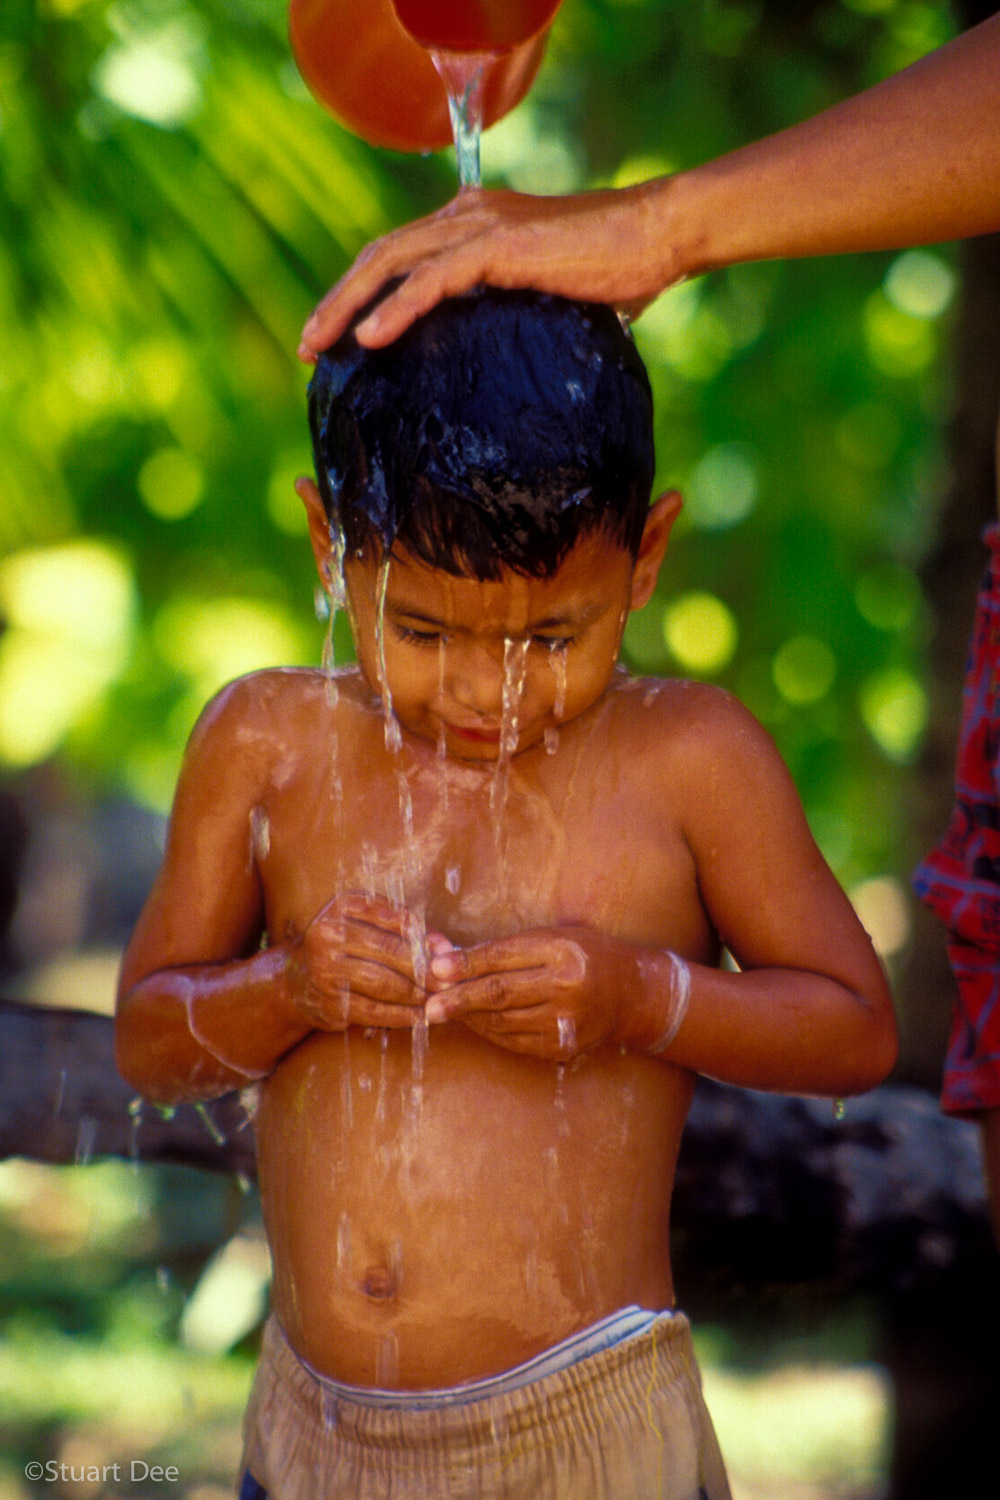 Boy Getting Bathed, Panglao Island, Bohol, Philippines